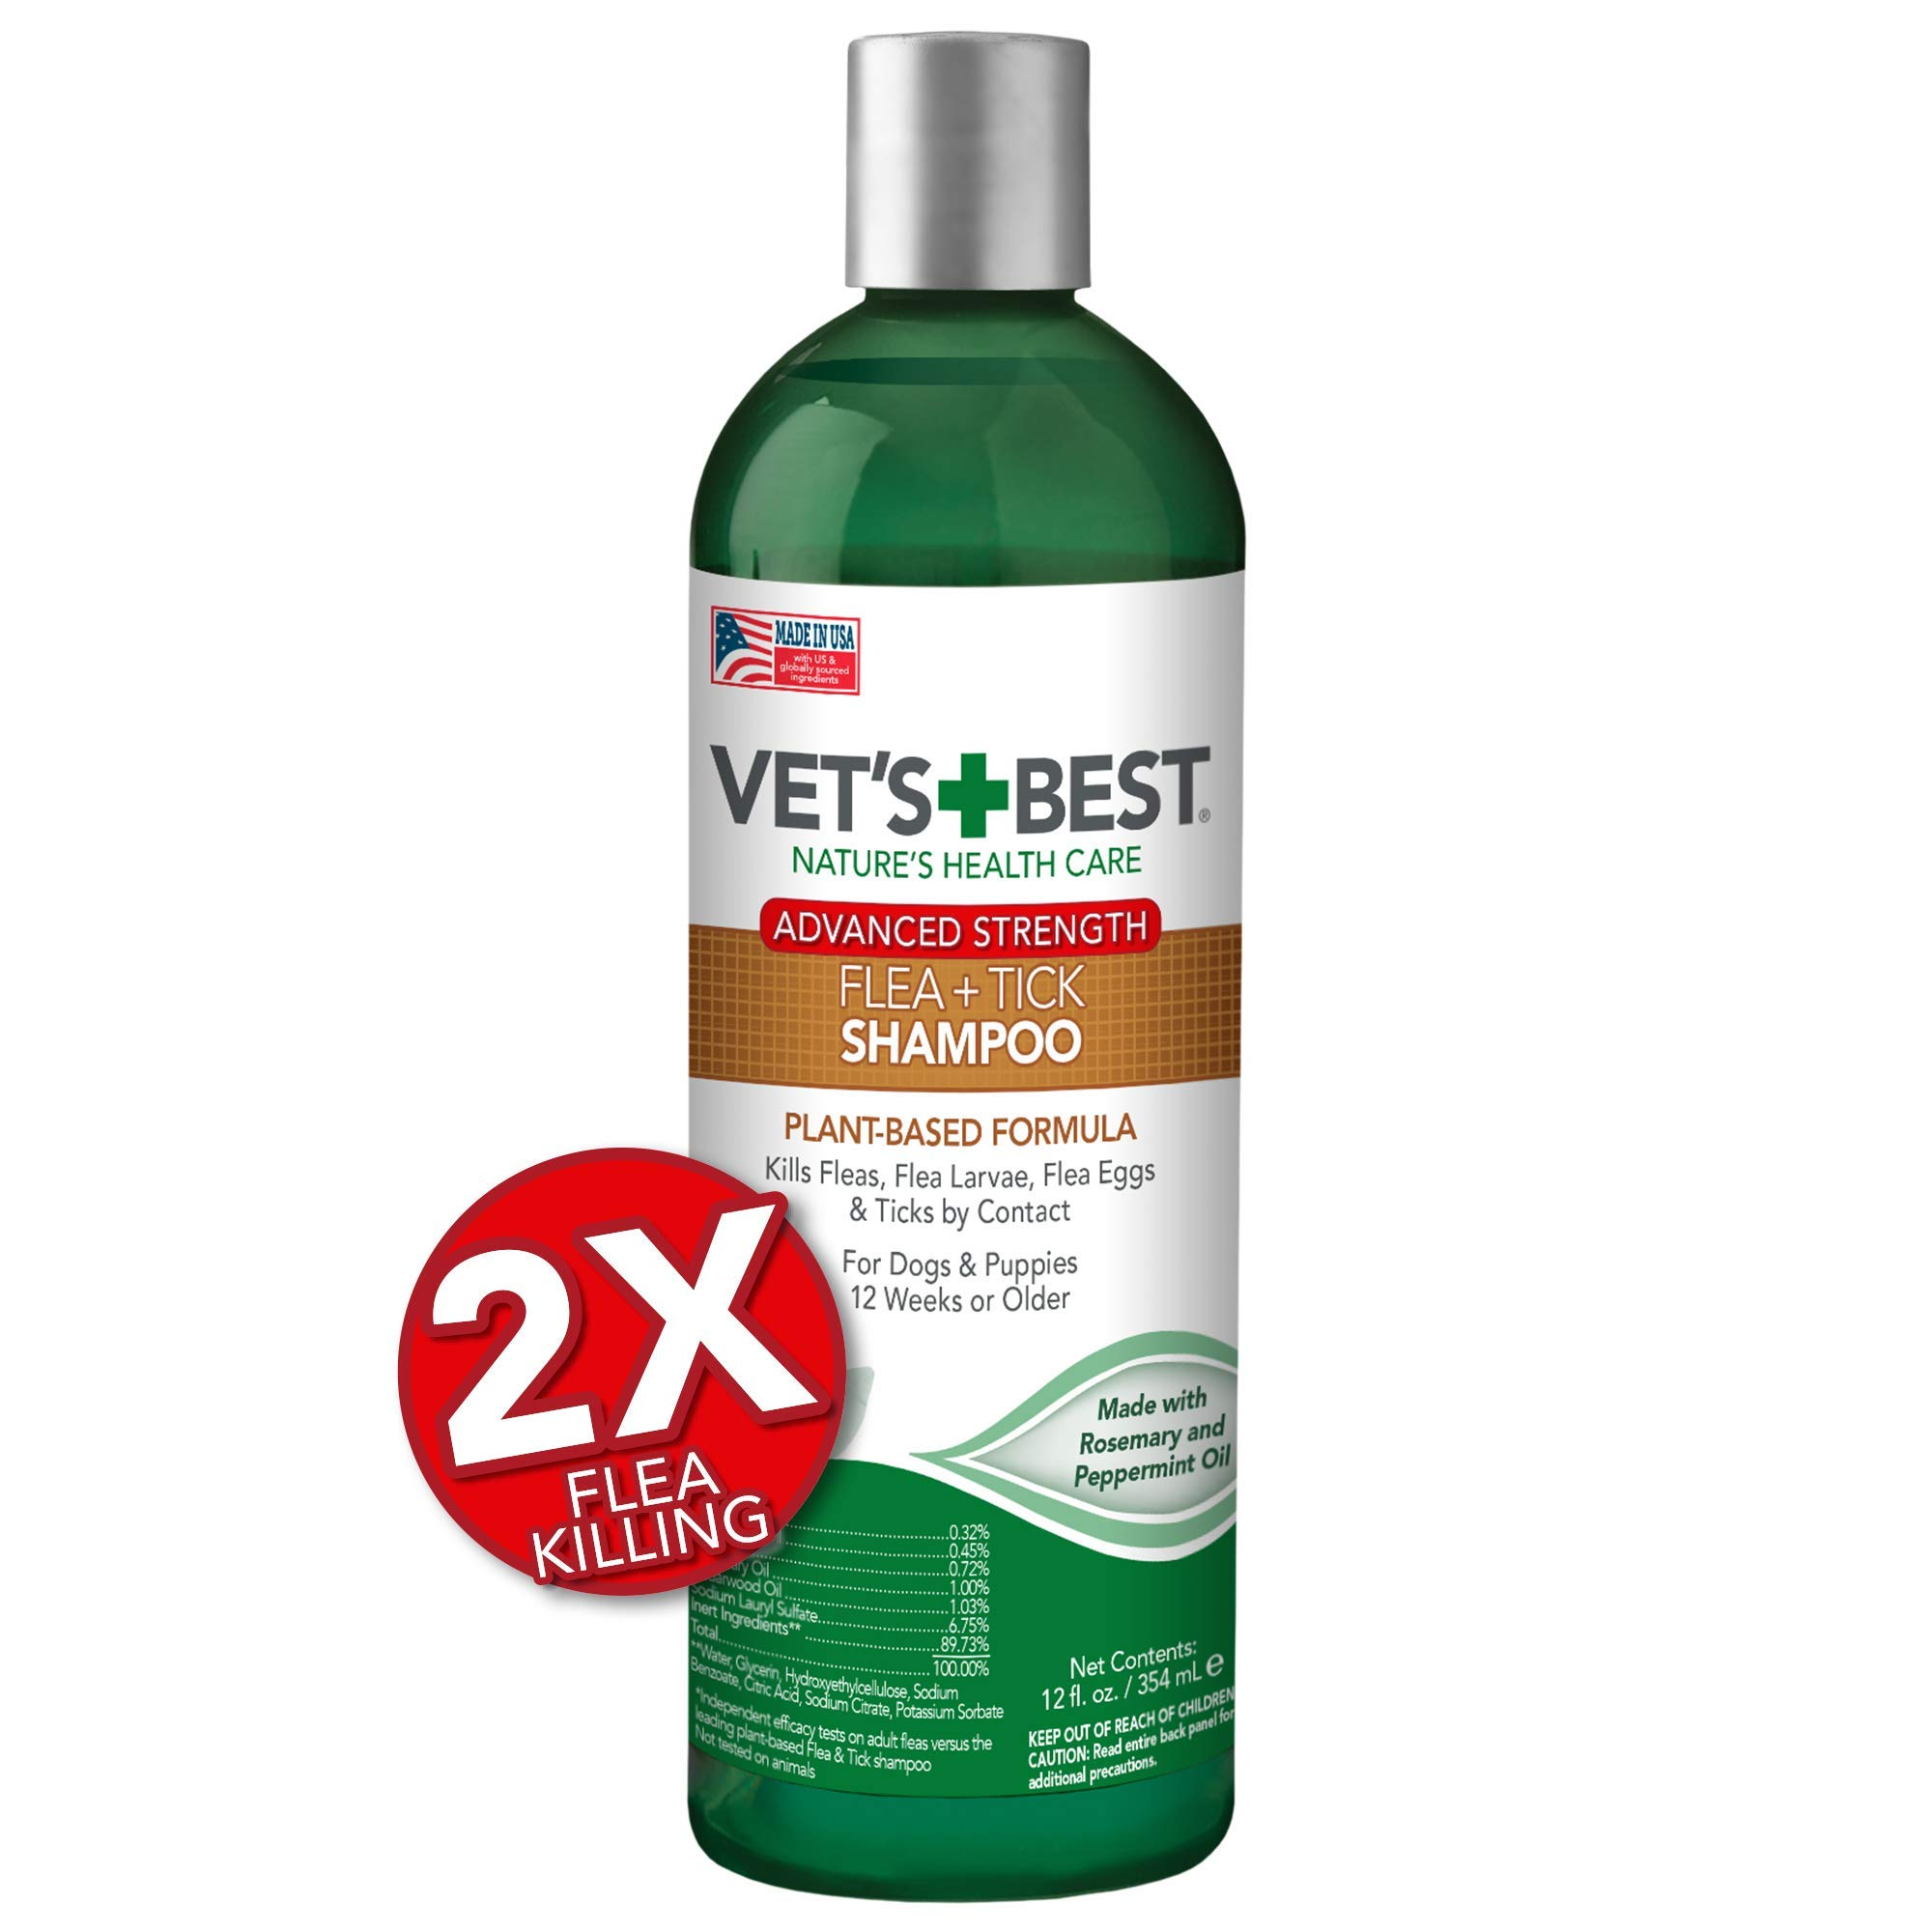 Vet's Best Flea and Tick Advanced Strength Dog Shampoo | Flea Treatment for Dogs | Flea Killer with Certified Natural Oils | 12 Ounces by Vet's Best